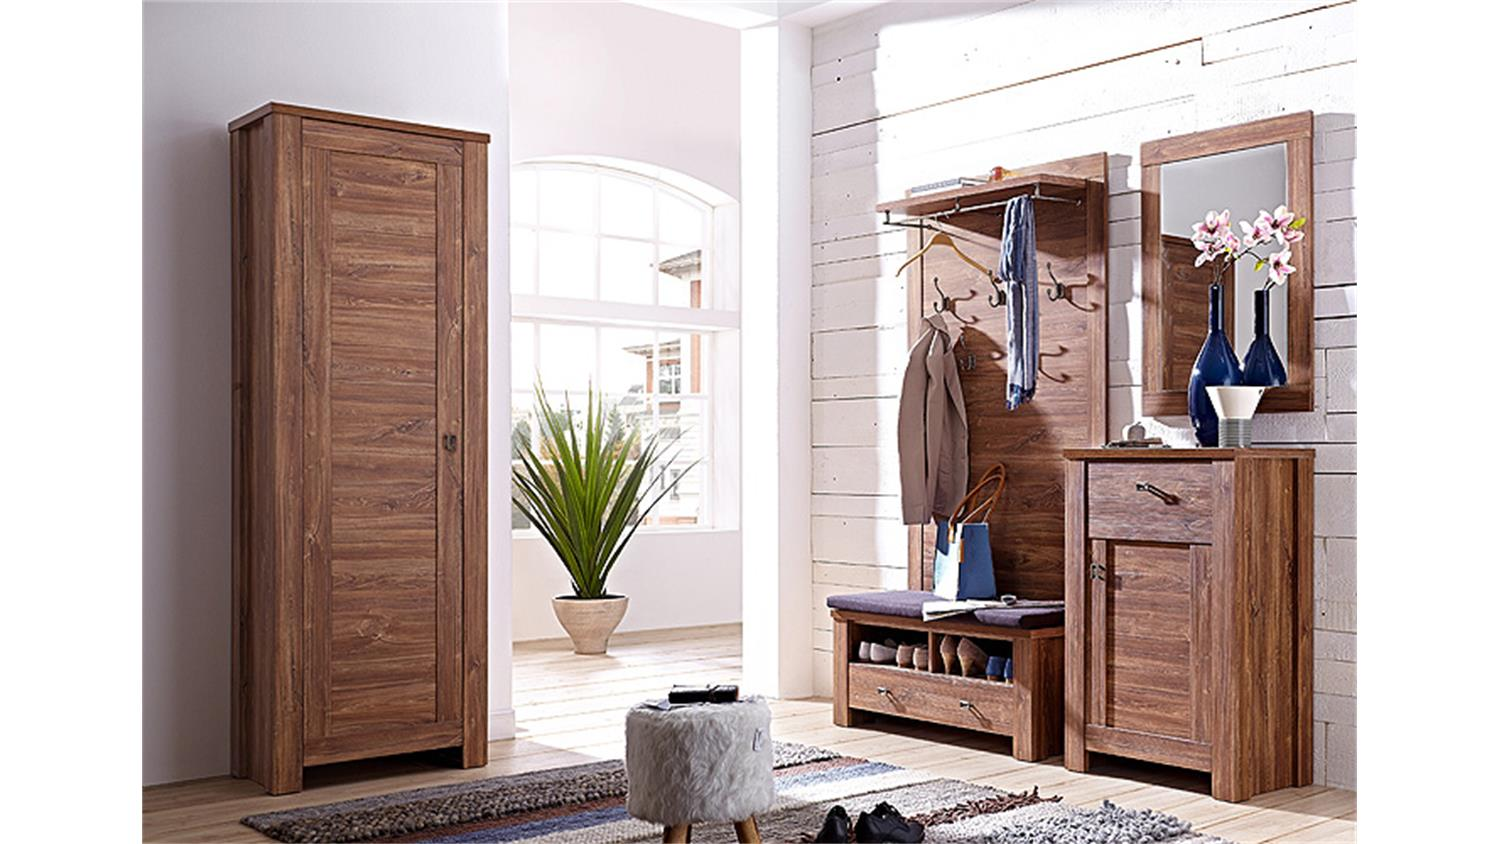 garderobenschrank br ssel garderobe schrank akazie dunkel. Black Bedroom Furniture Sets. Home Design Ideas